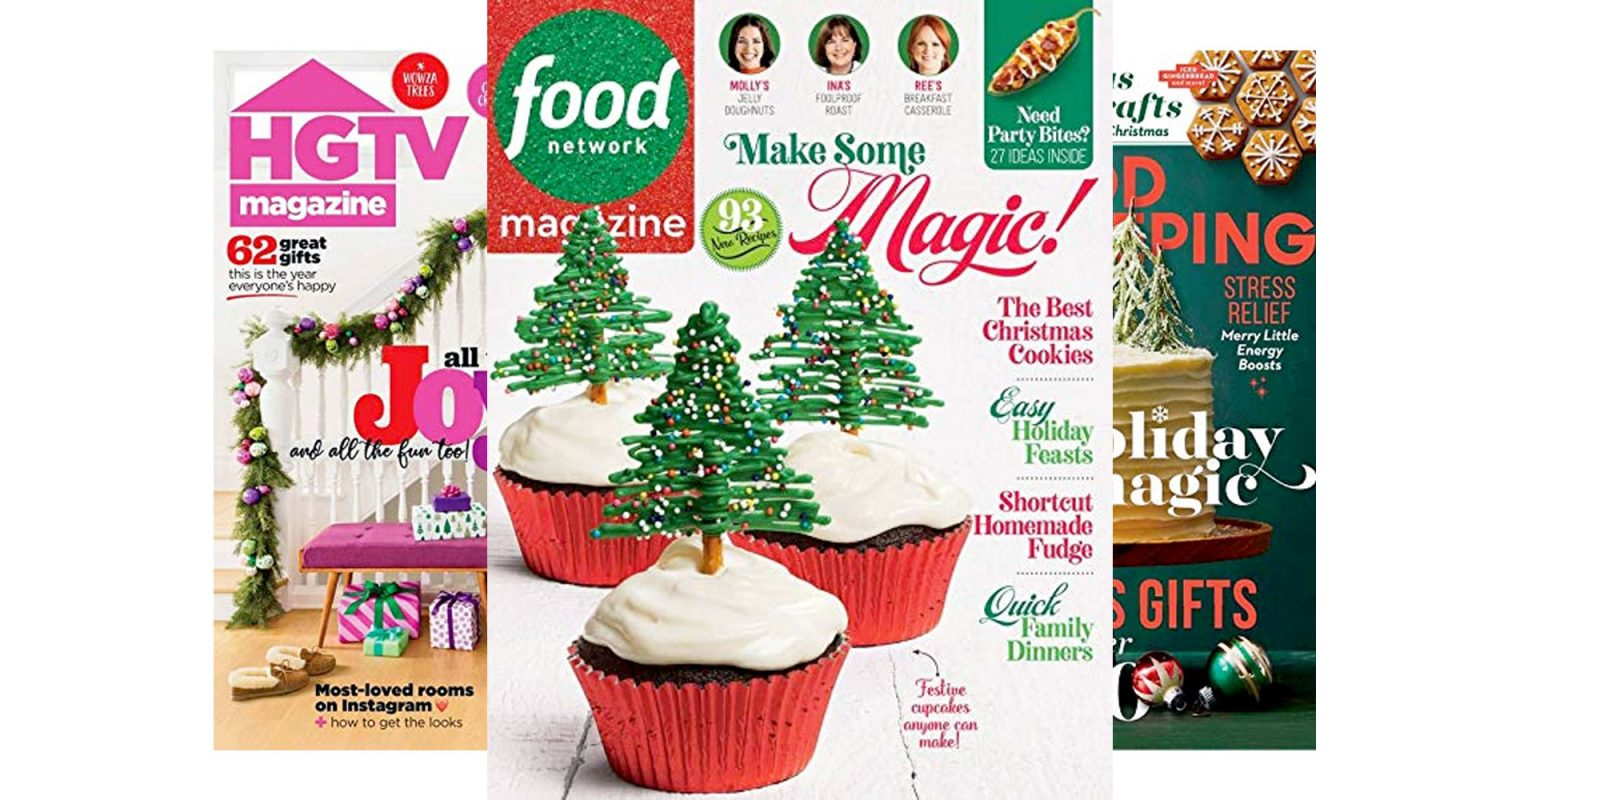 Kick back and relax with magazine subscriptions from $3 on your Kindle